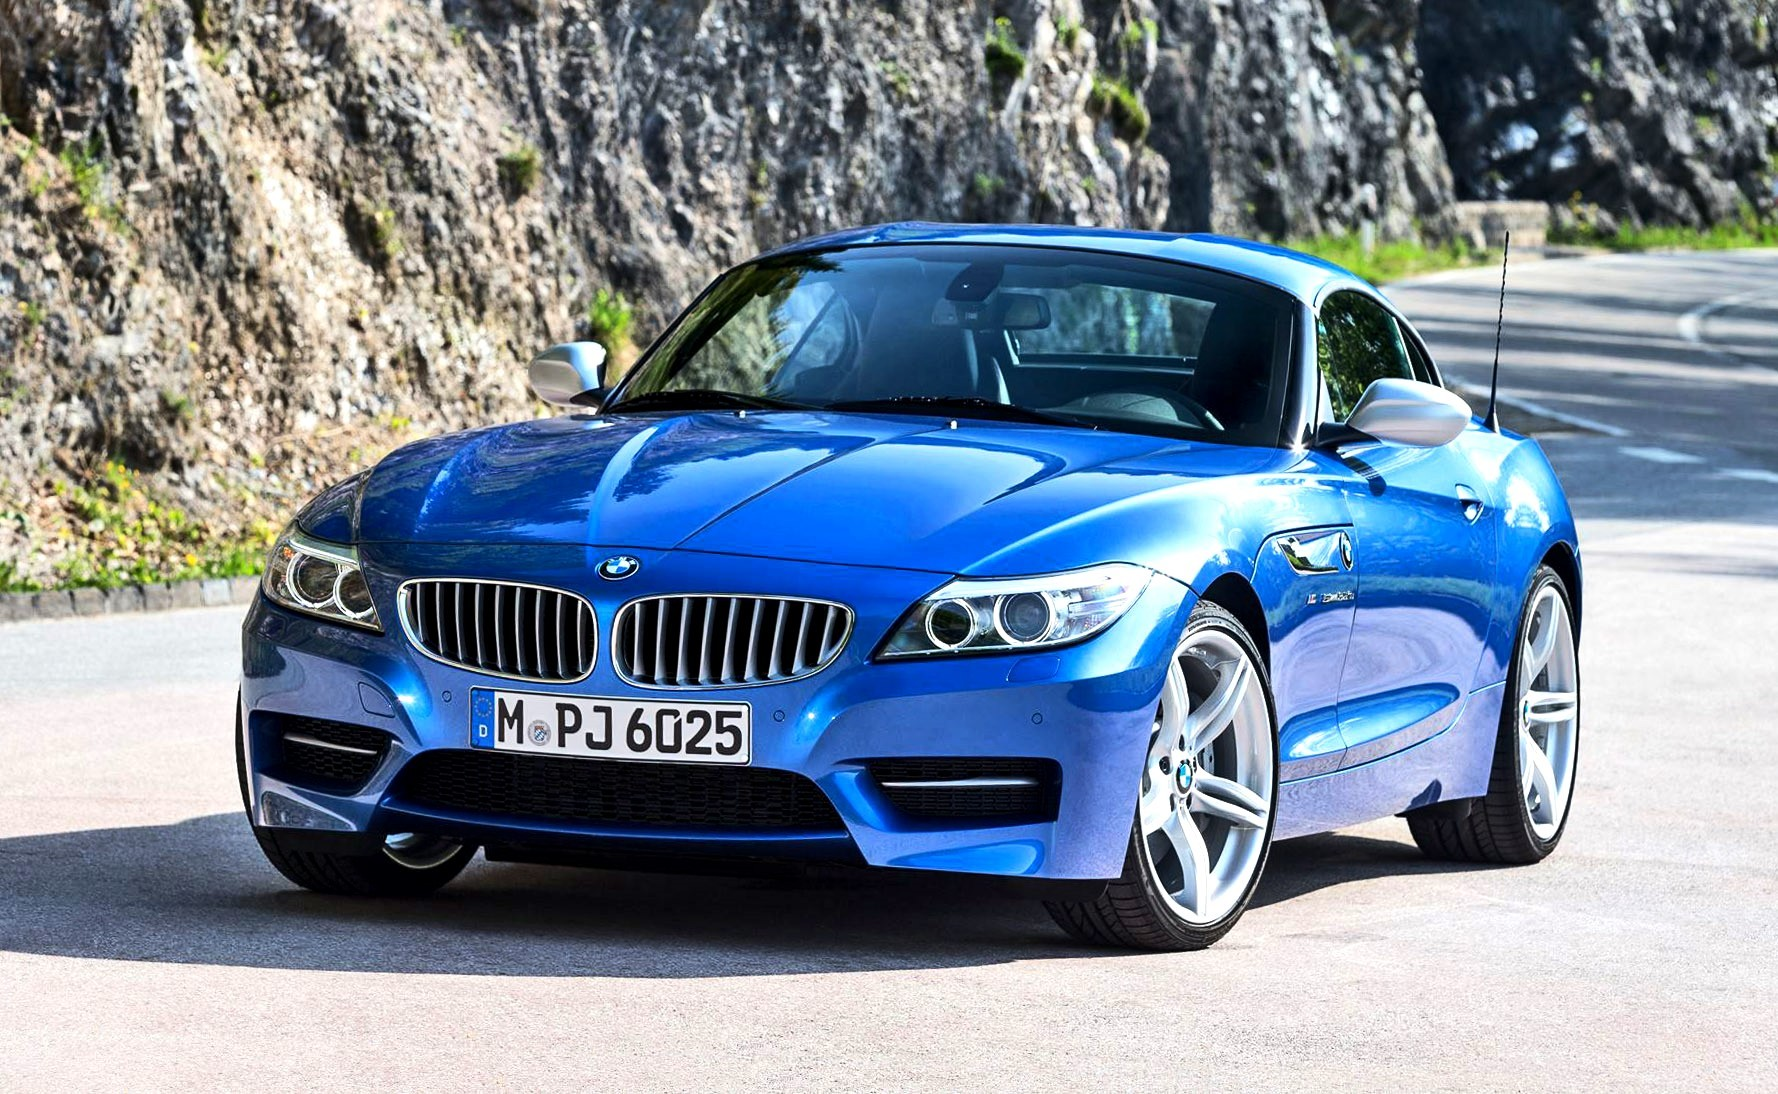 2016 bmw z4 m sport estoril blue 36. Black Bedroom Furniture Sets. Home Design Ideas